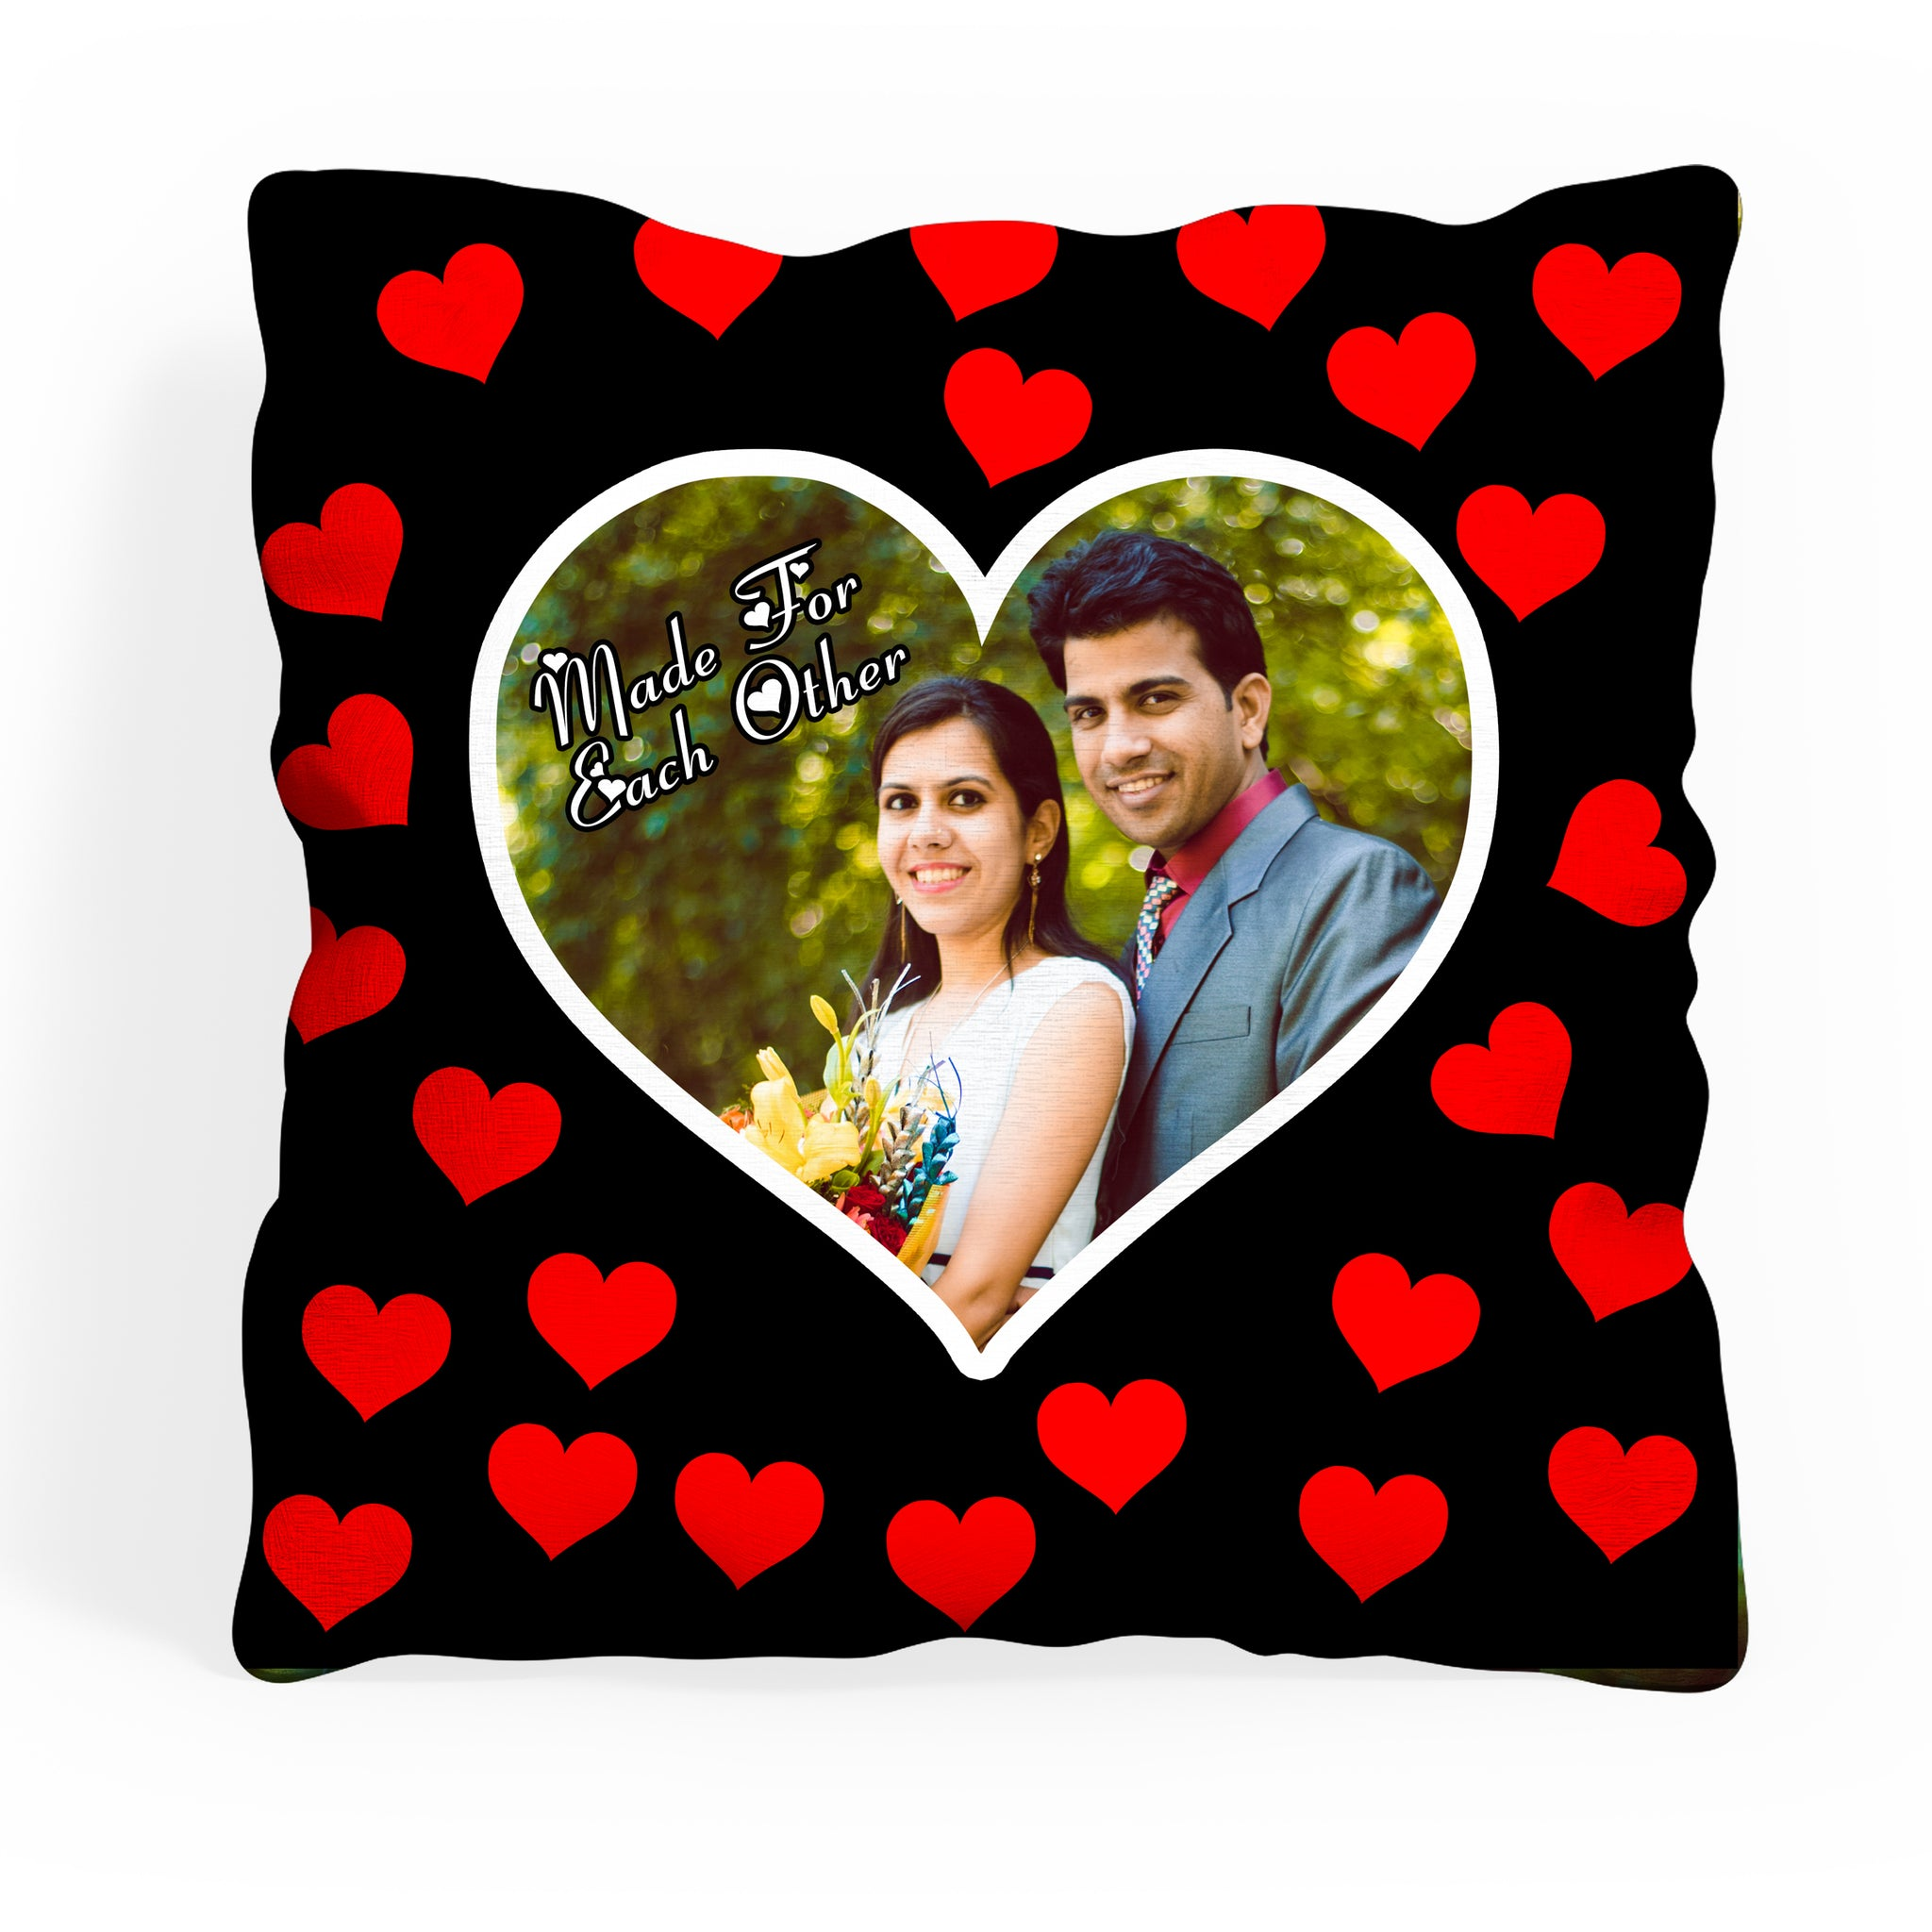 Personalized Photo Cushion With Filler